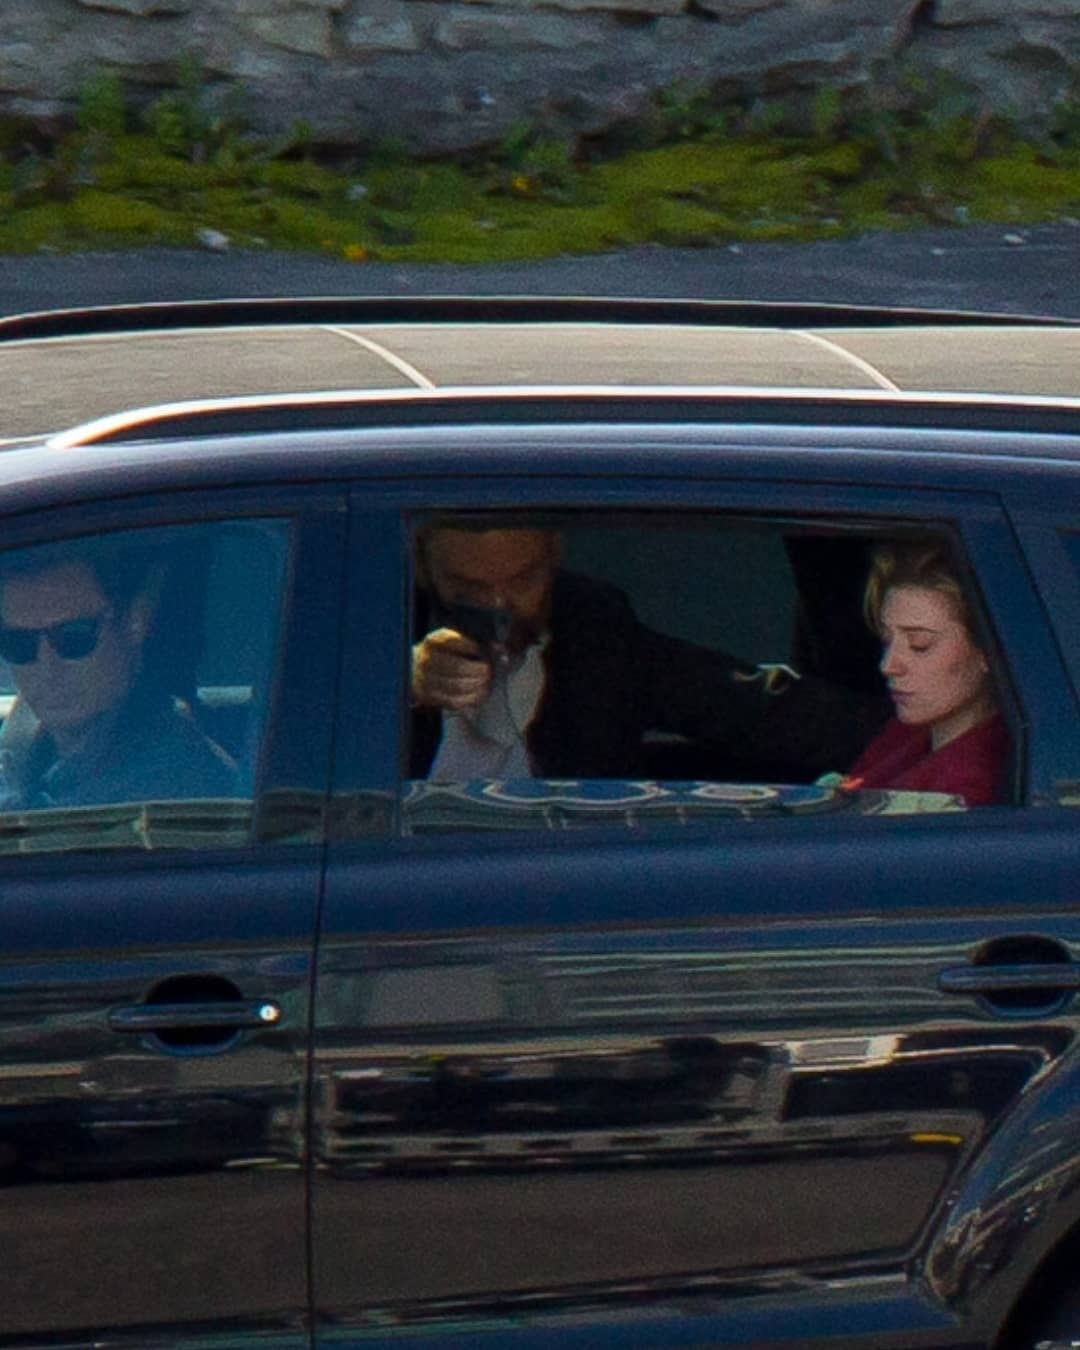 Tenet Set Photos Show Elizabeth Debicki, Cars Moving